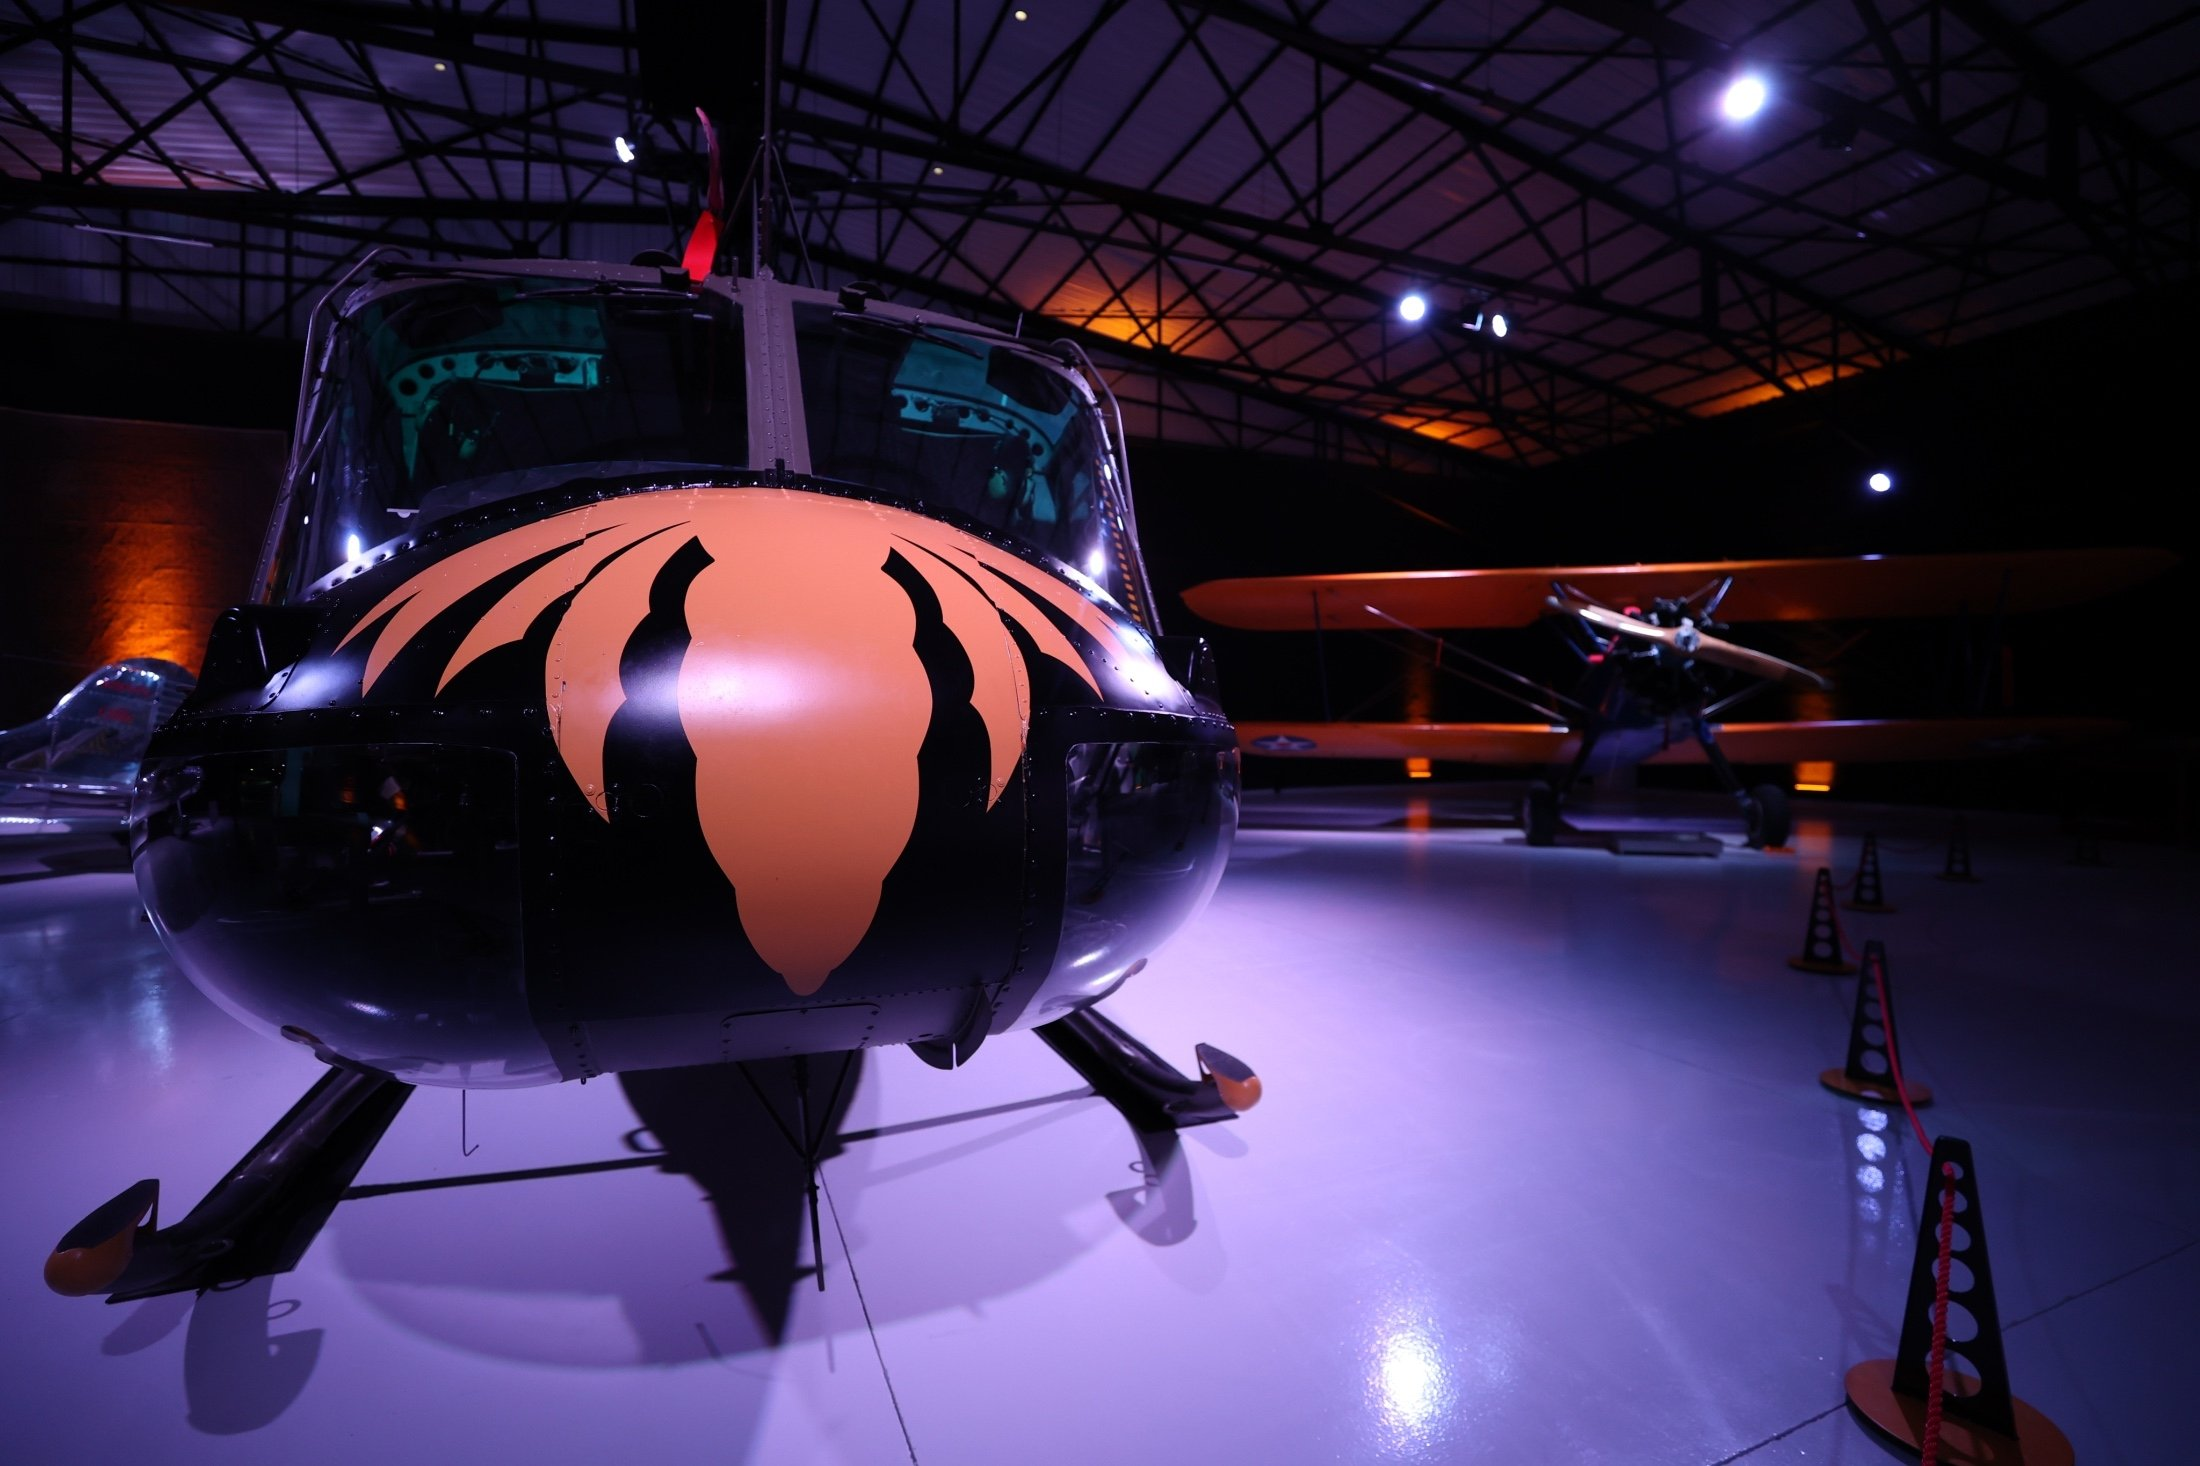 A Bell UH-1H helicopter that was used in theVietnam War andrecentlyinthe film'Five Eyes'starring Jason Statham, stands on display in theM.S.Ö. Air and Space Museum in Eskişehir, Turkey, May 17, 2021. (AA Photo)